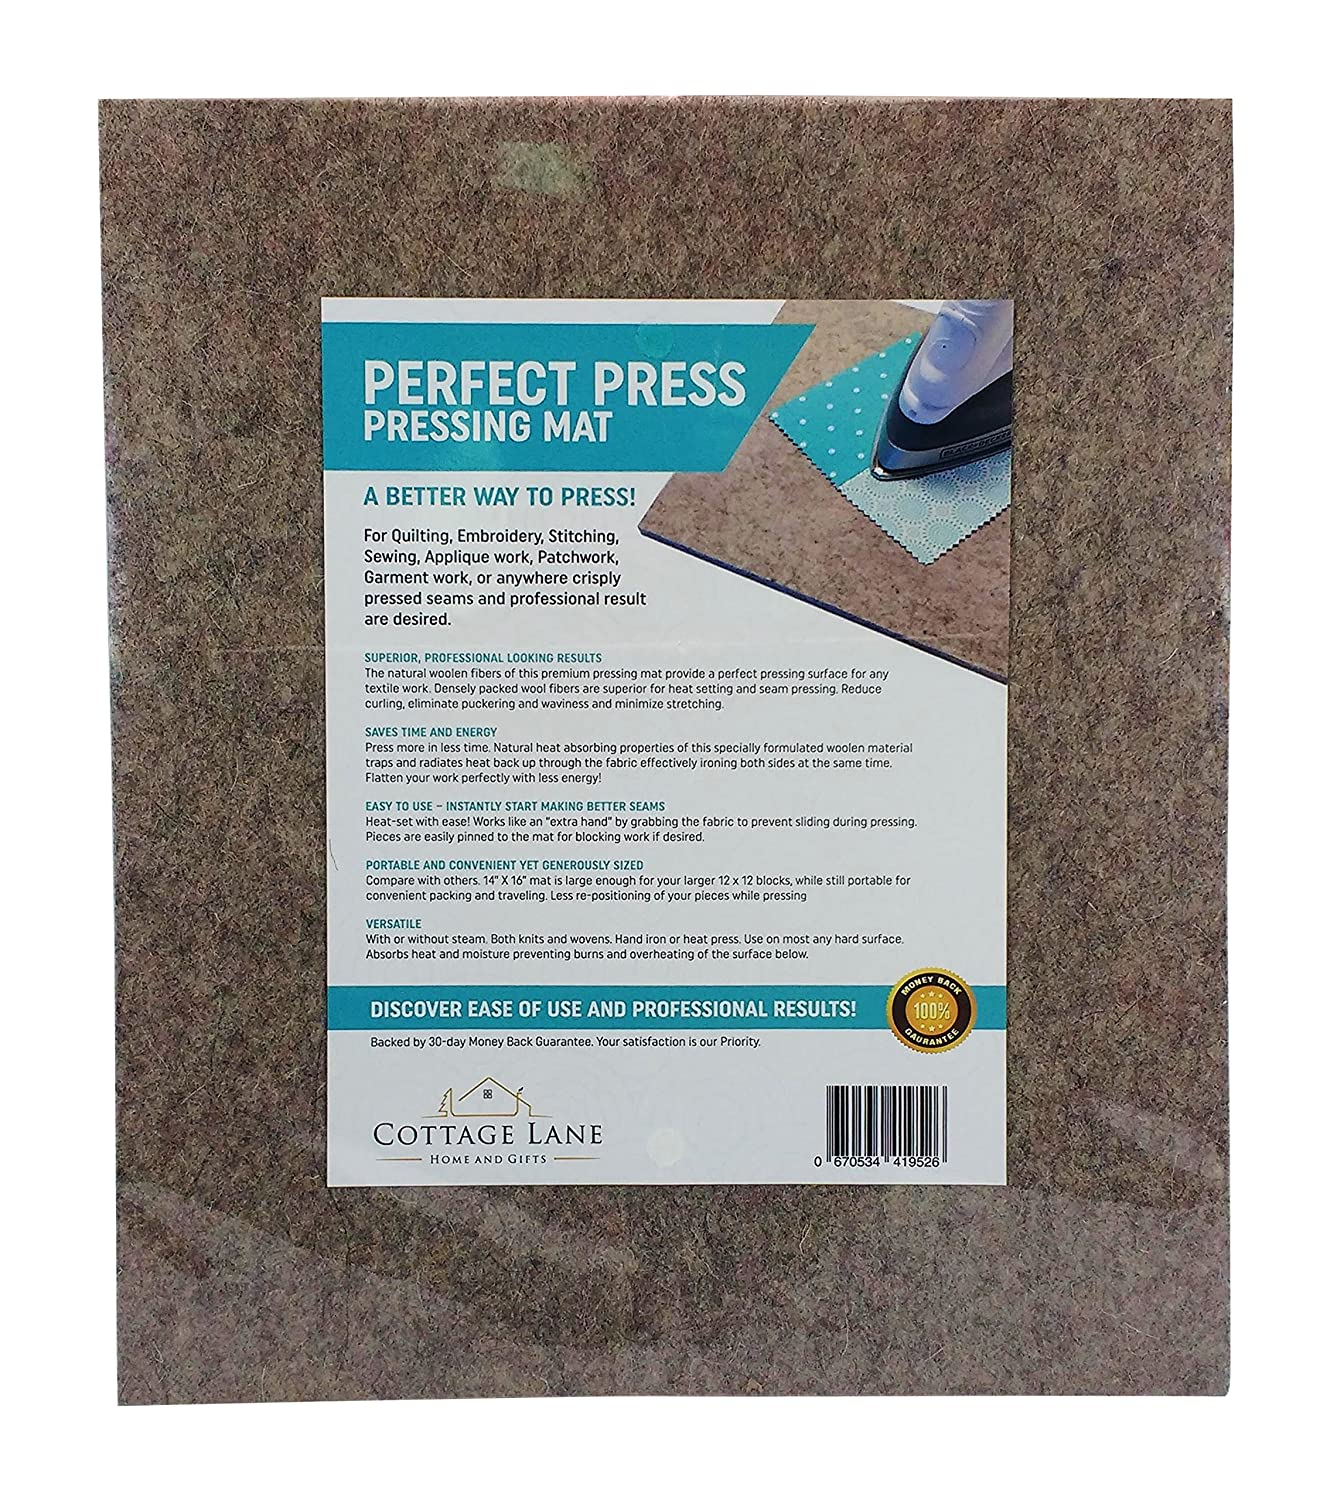 "Quilter's Pressing Mat (Pad) 14"" x 16""(224 sq in) Quality Wool Ironing Mat. Quilting Embroidery Stitching Sewing Applique Work Patchwork Garment Work. Crisply Pressed Seams with Professional Results Cottage Lane Home and Gifts"